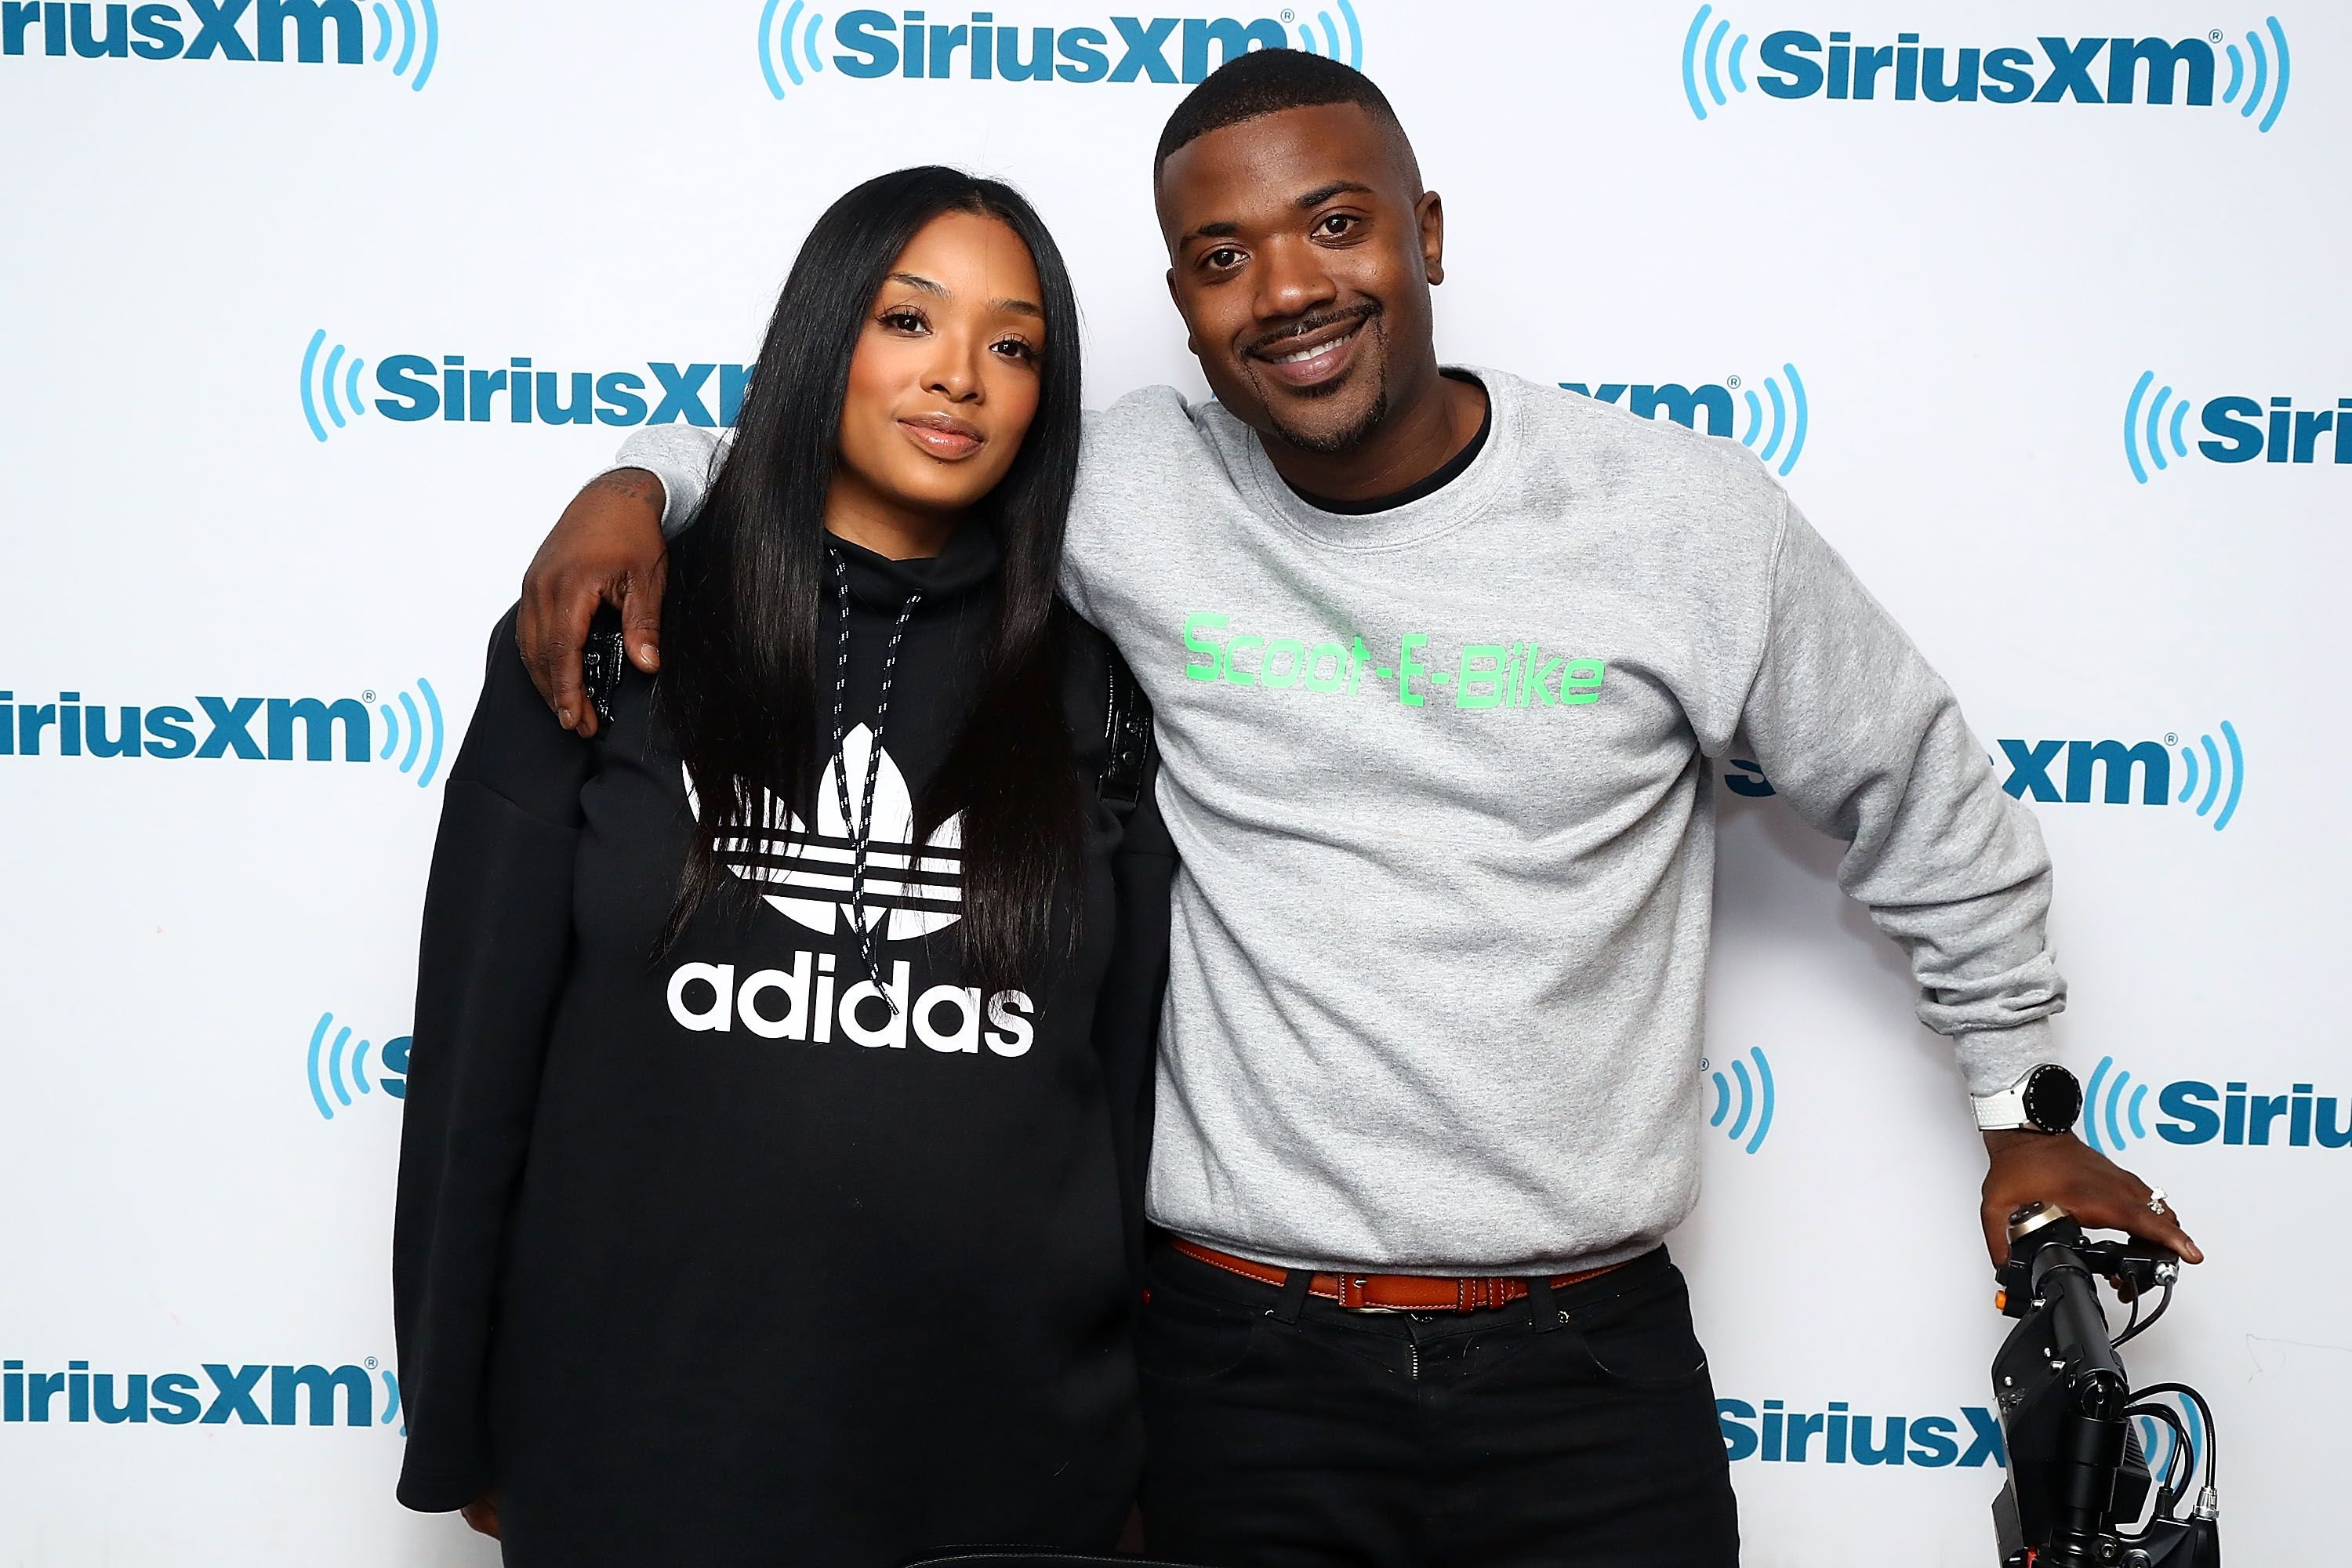 Princess Love and Ray J at the SiriusXM Studios on March 29, 2018 | Photo: Getty Images